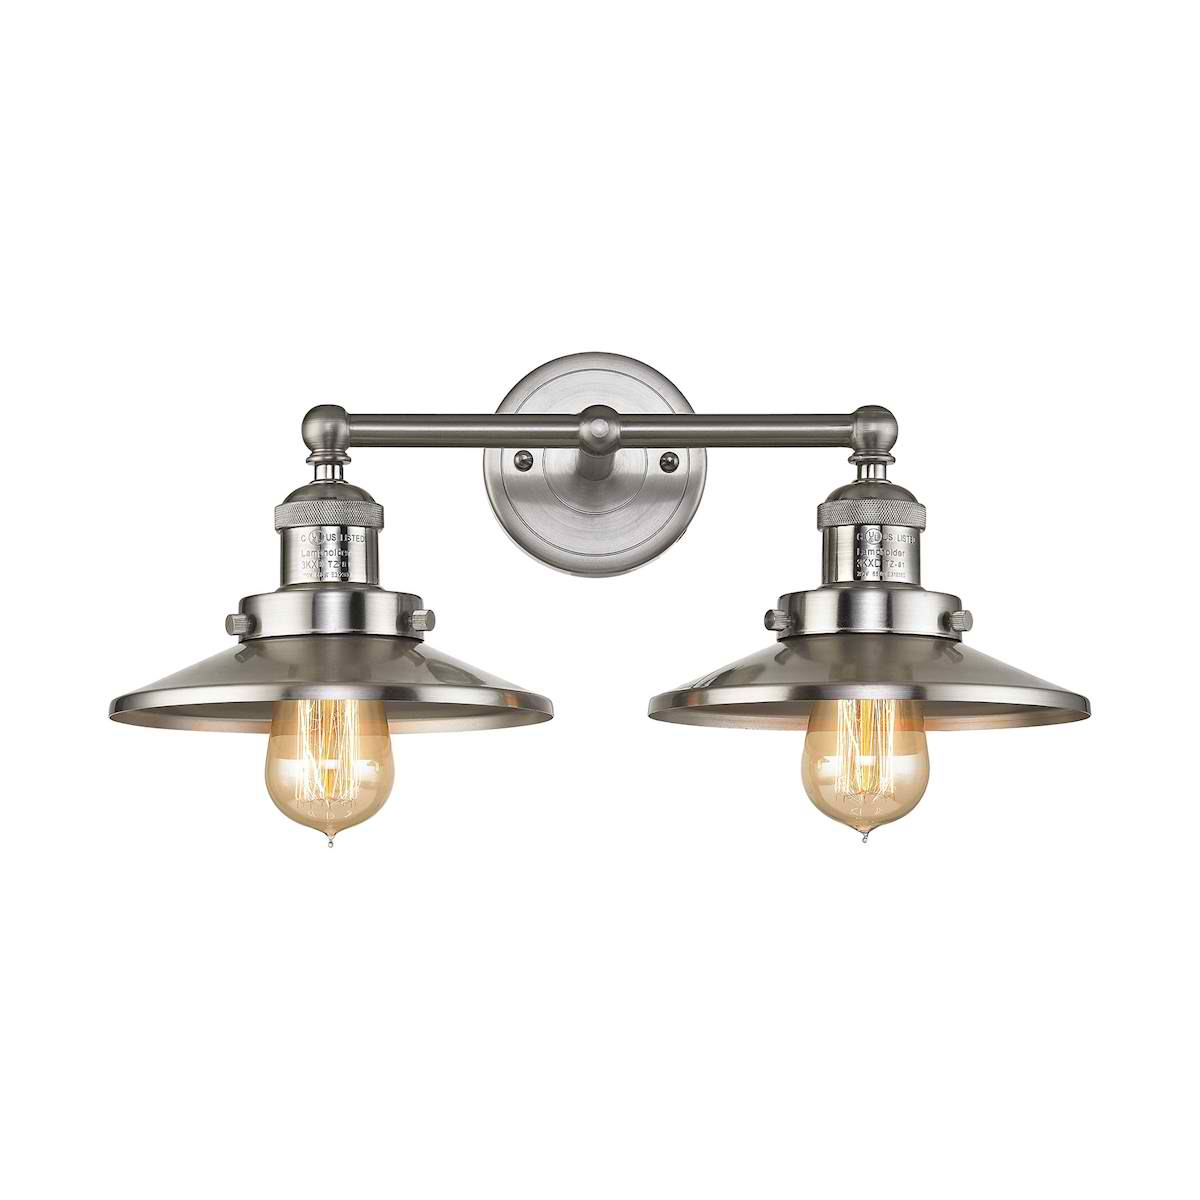 English Pub 2 Light Vanity in Satin Nickel